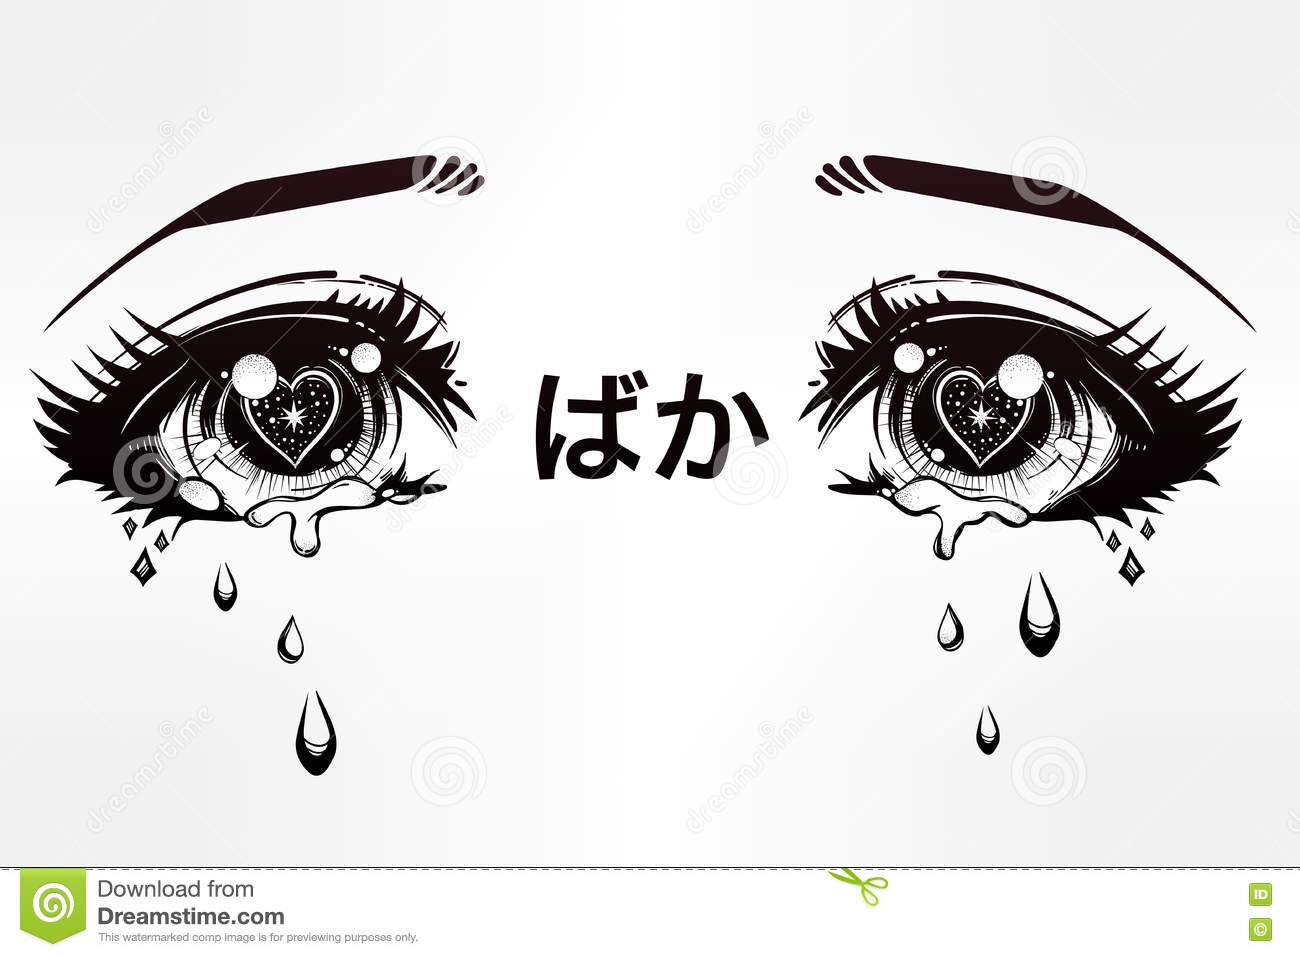 Dessin Facile A Refaire Crying Eyes In Anime Or Manga Style Stock Vector